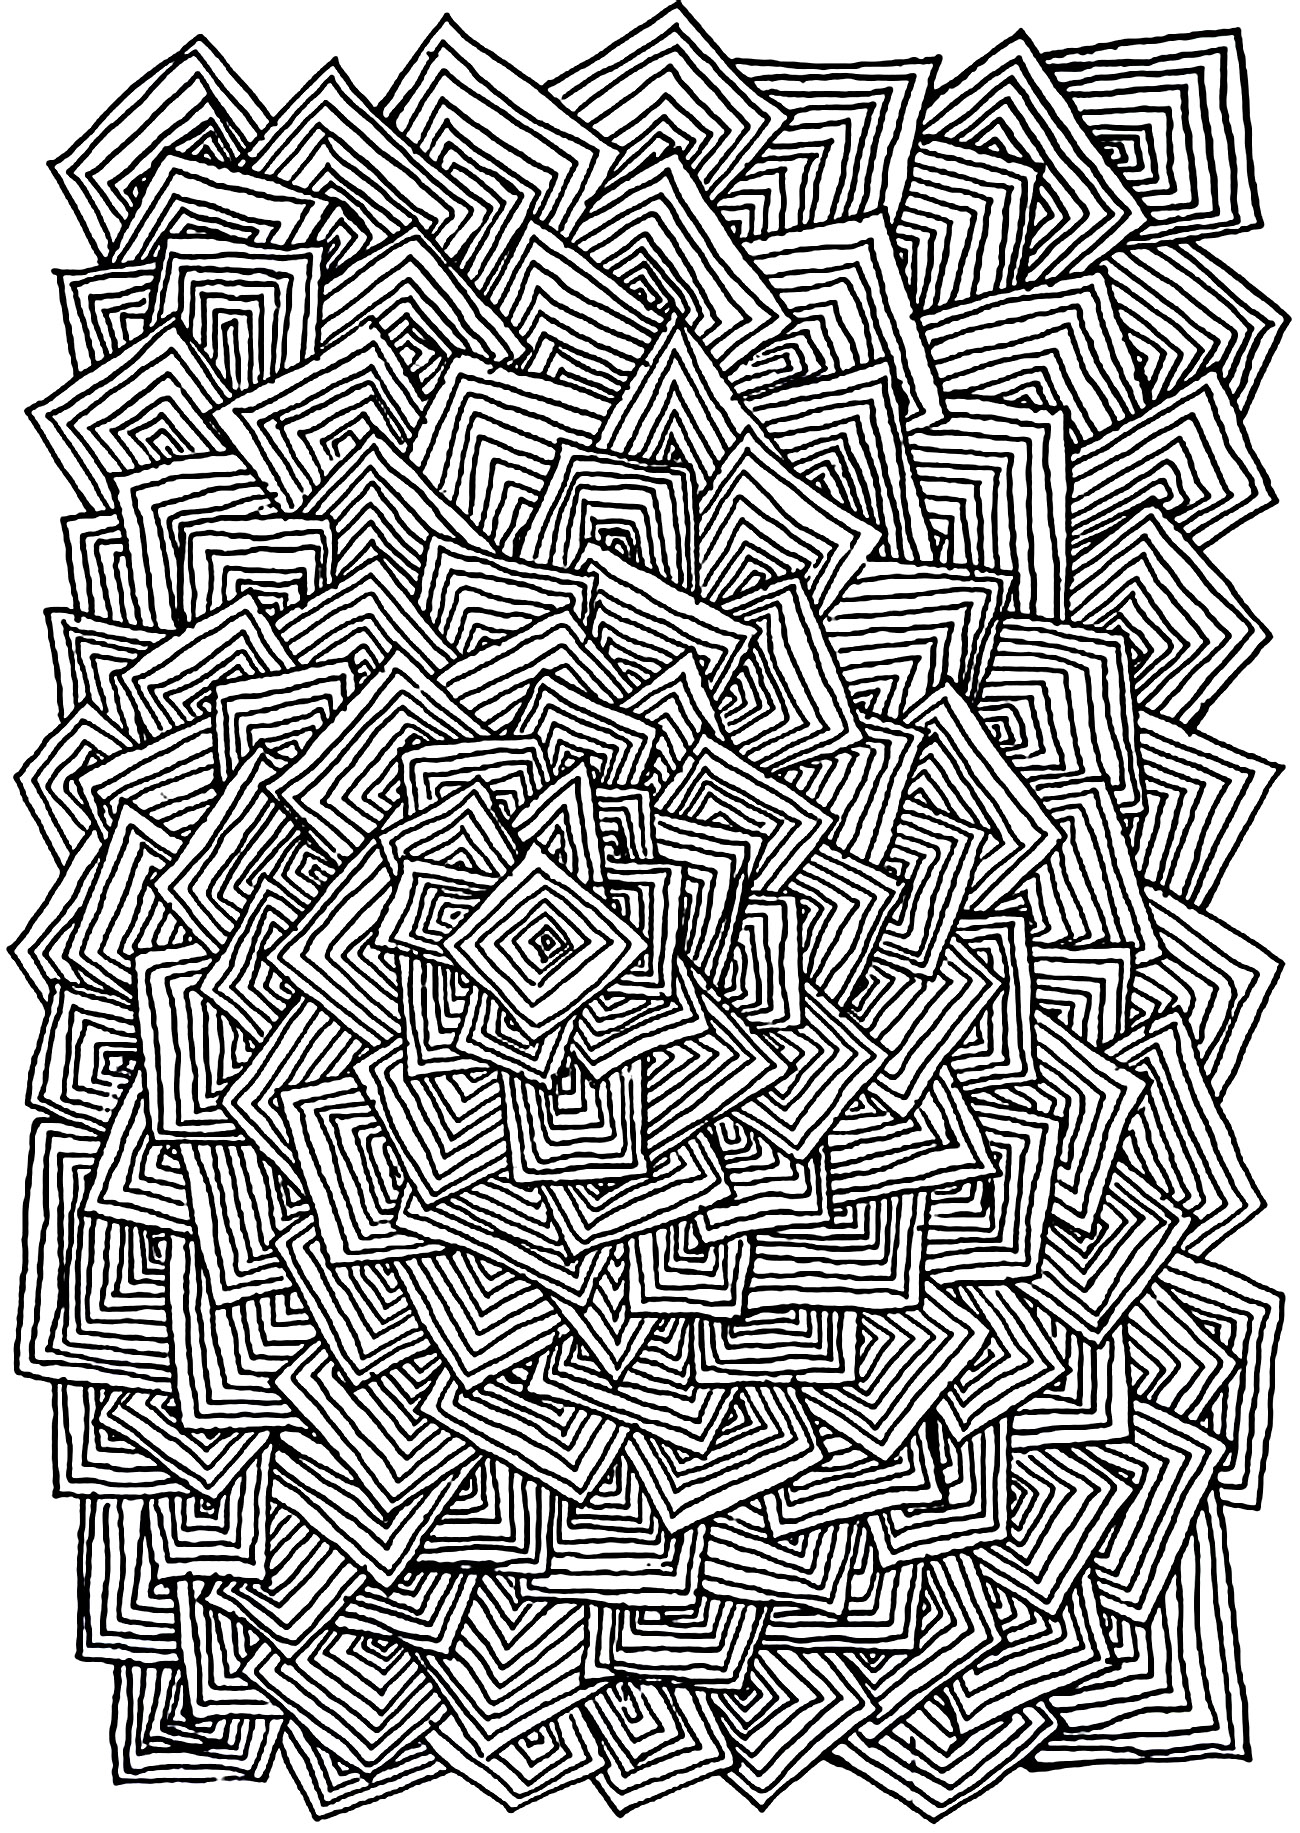 Coloriage Enchevetrement Carres on adult coloring pages for anxiety